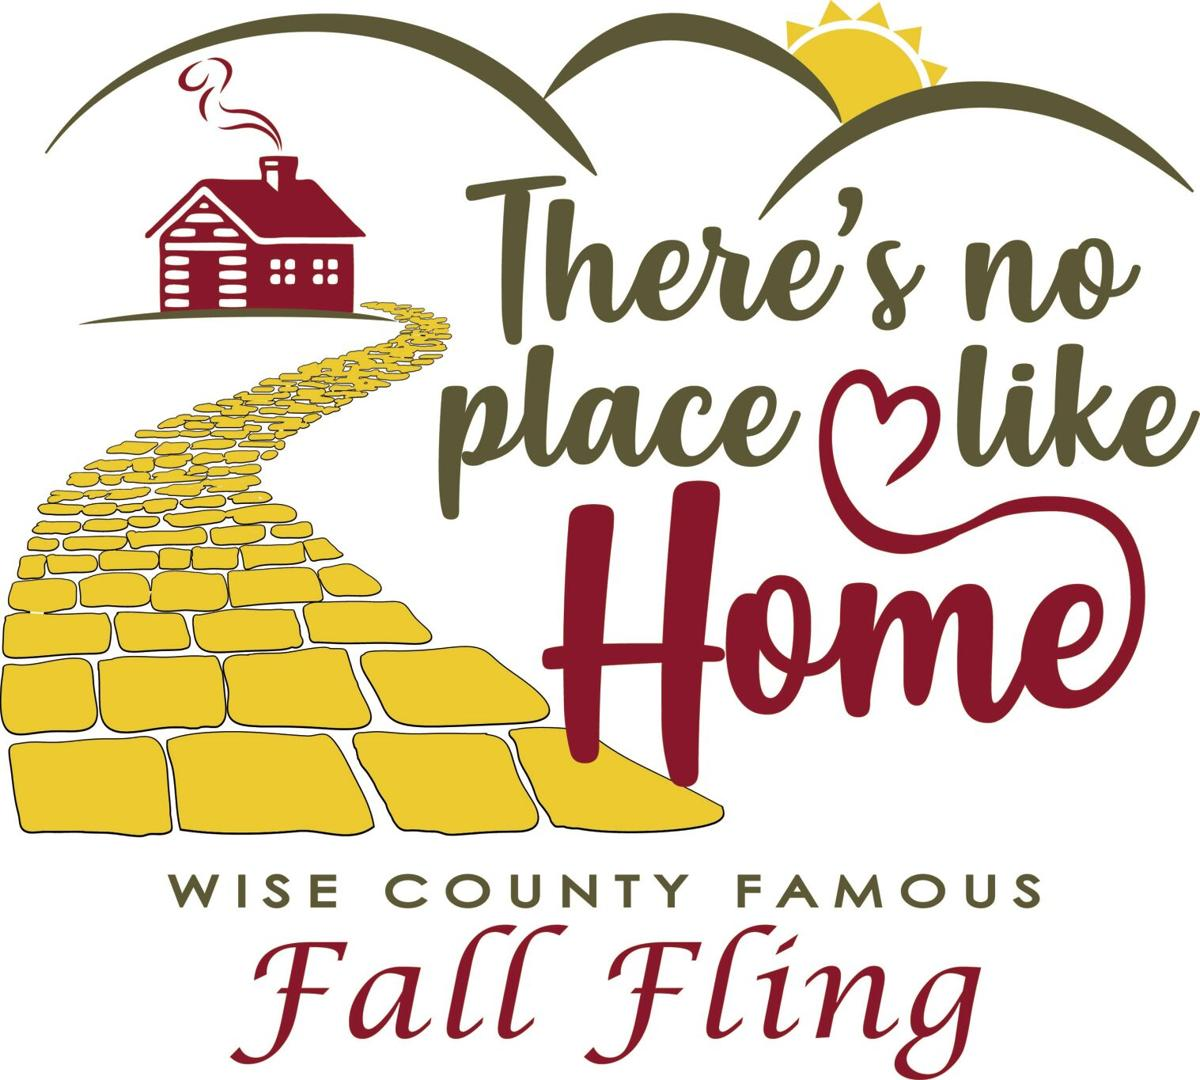 43rd annual Wise Fall Fling